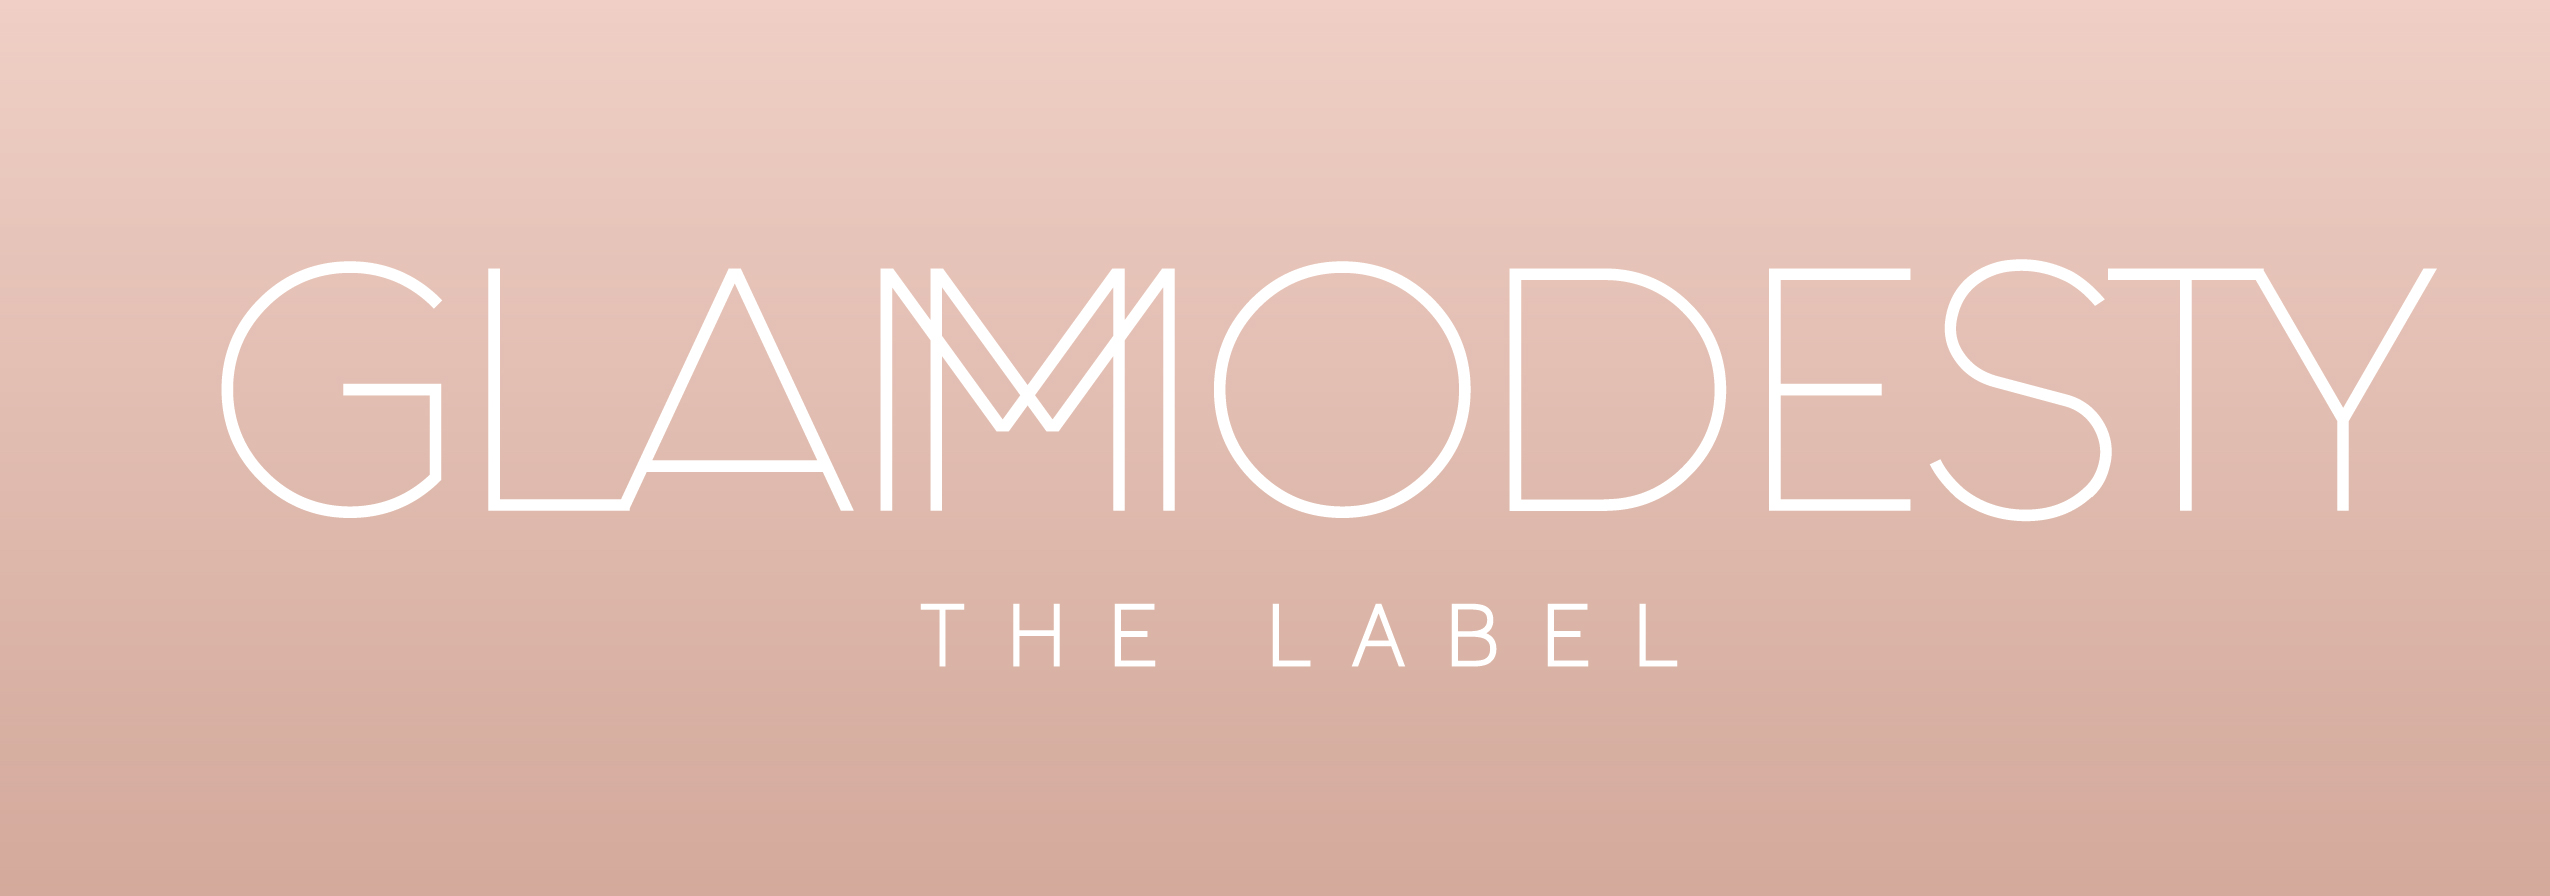 GLAM MODESTY THE LABEL